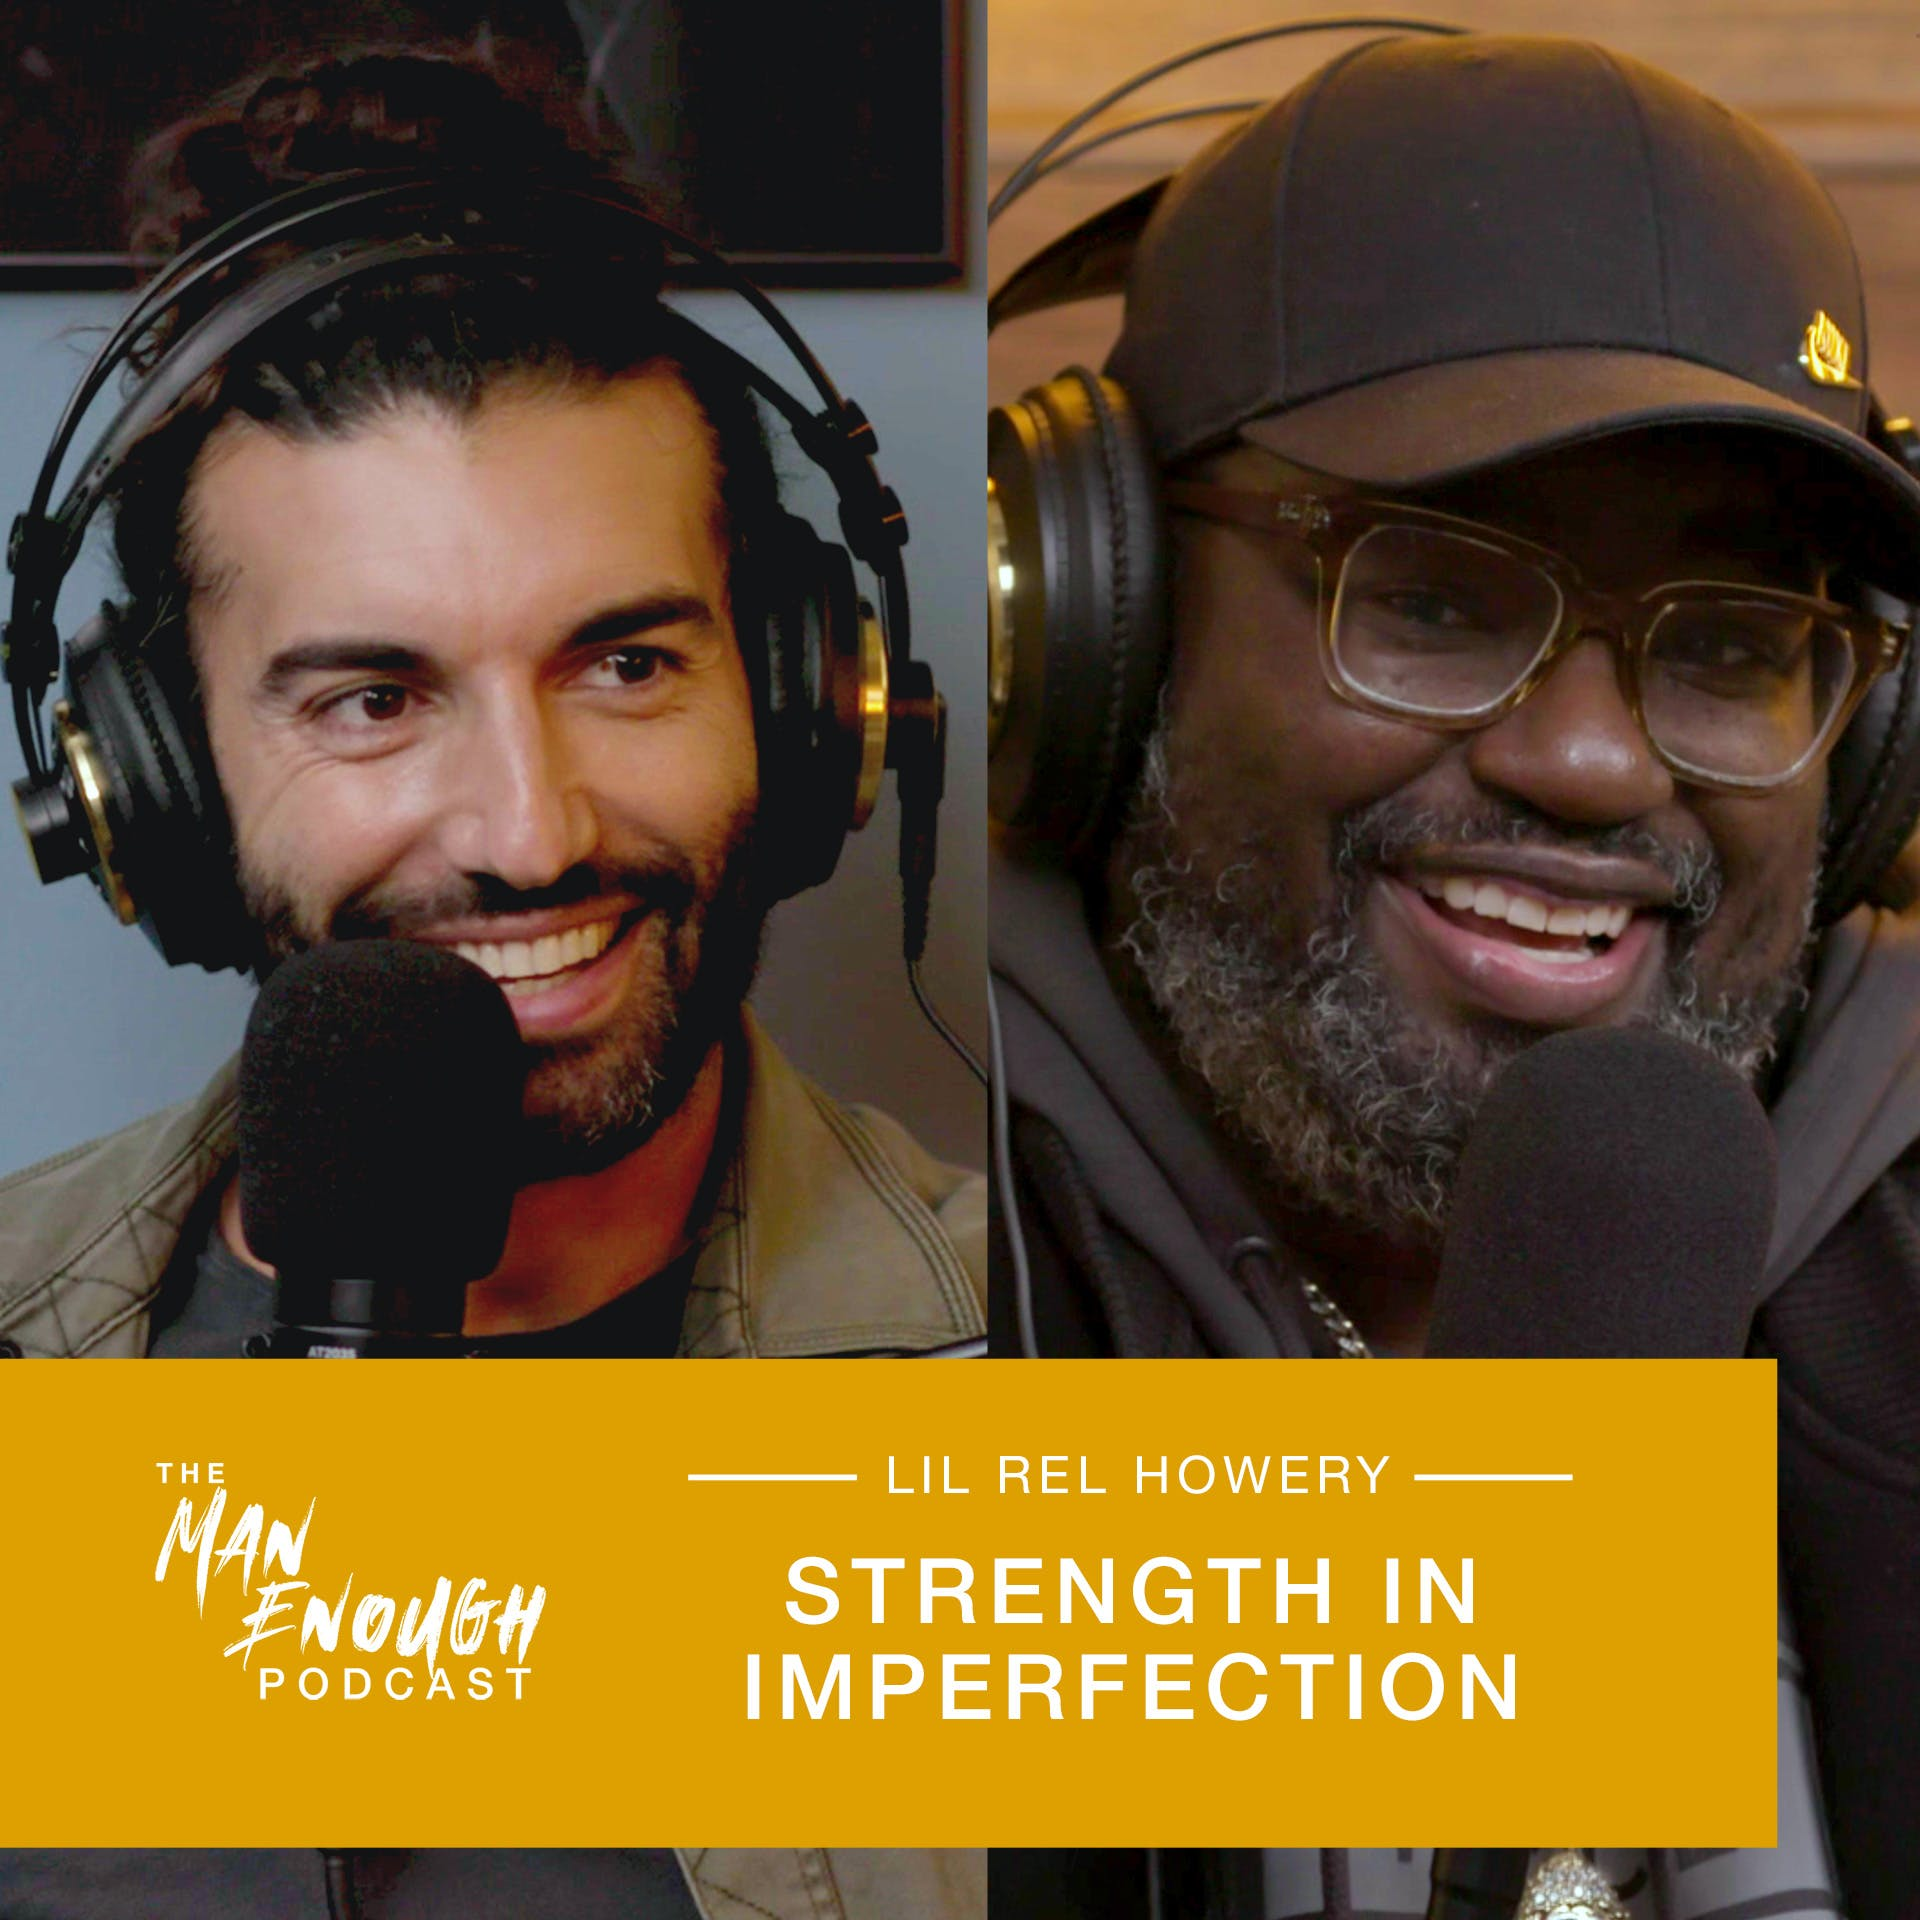 Lil Rel Howery: Strength in Imperfection